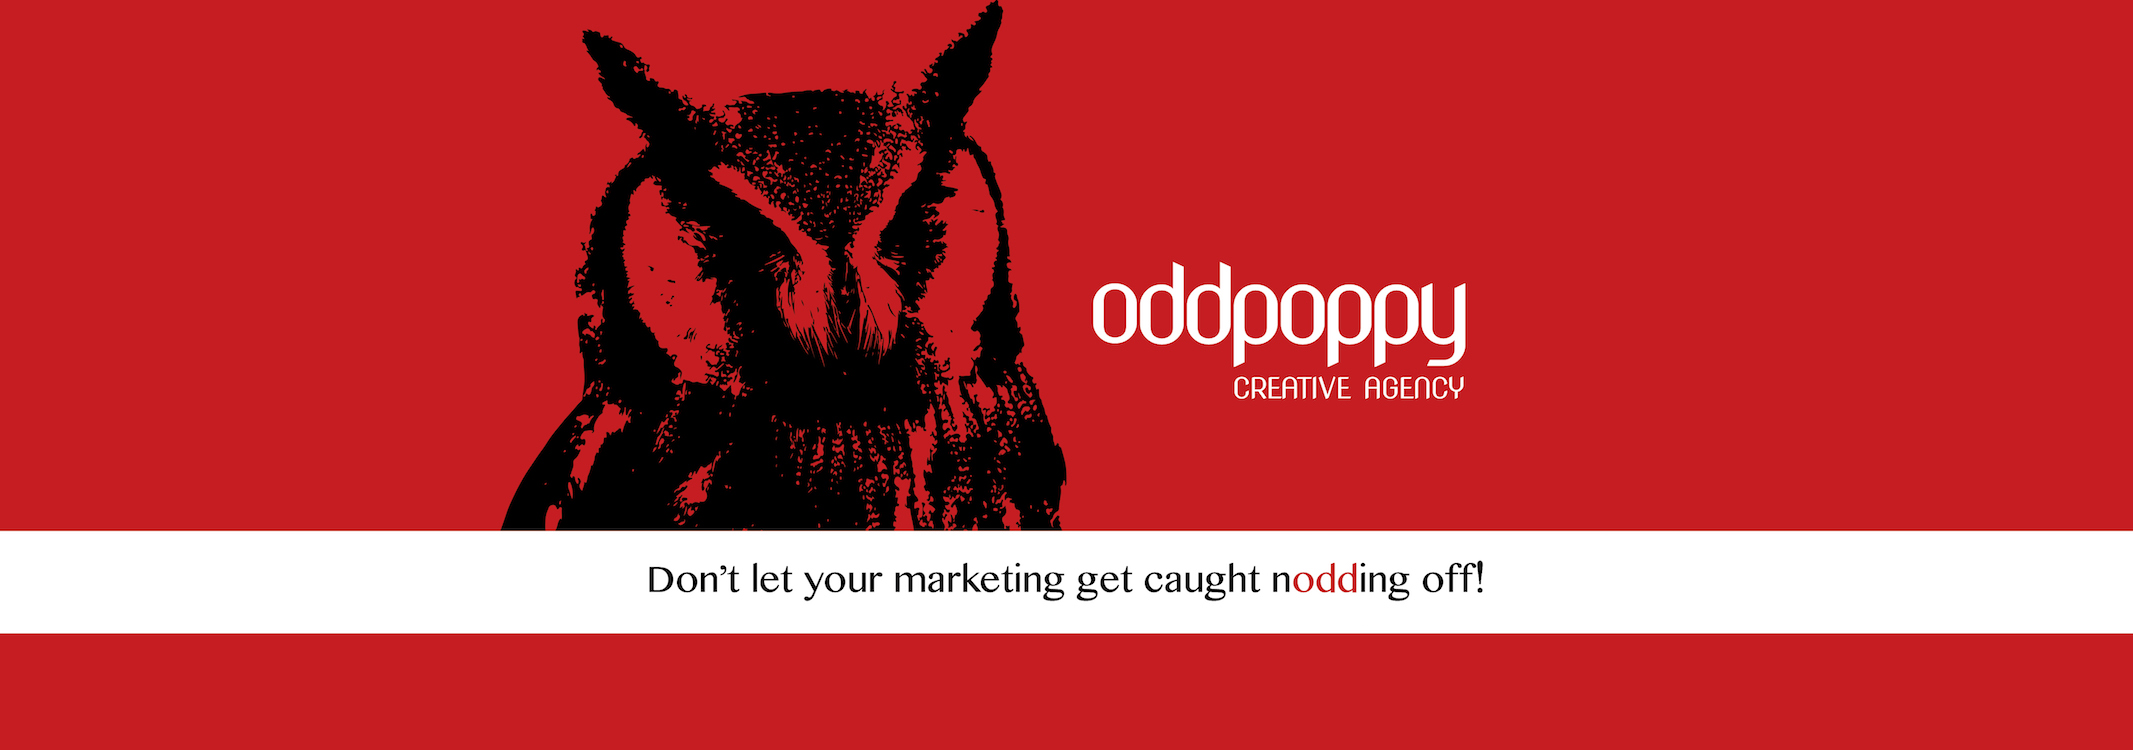 Odd Poppy Creative | Advertising Agency | Johannesburg | Cape Town1